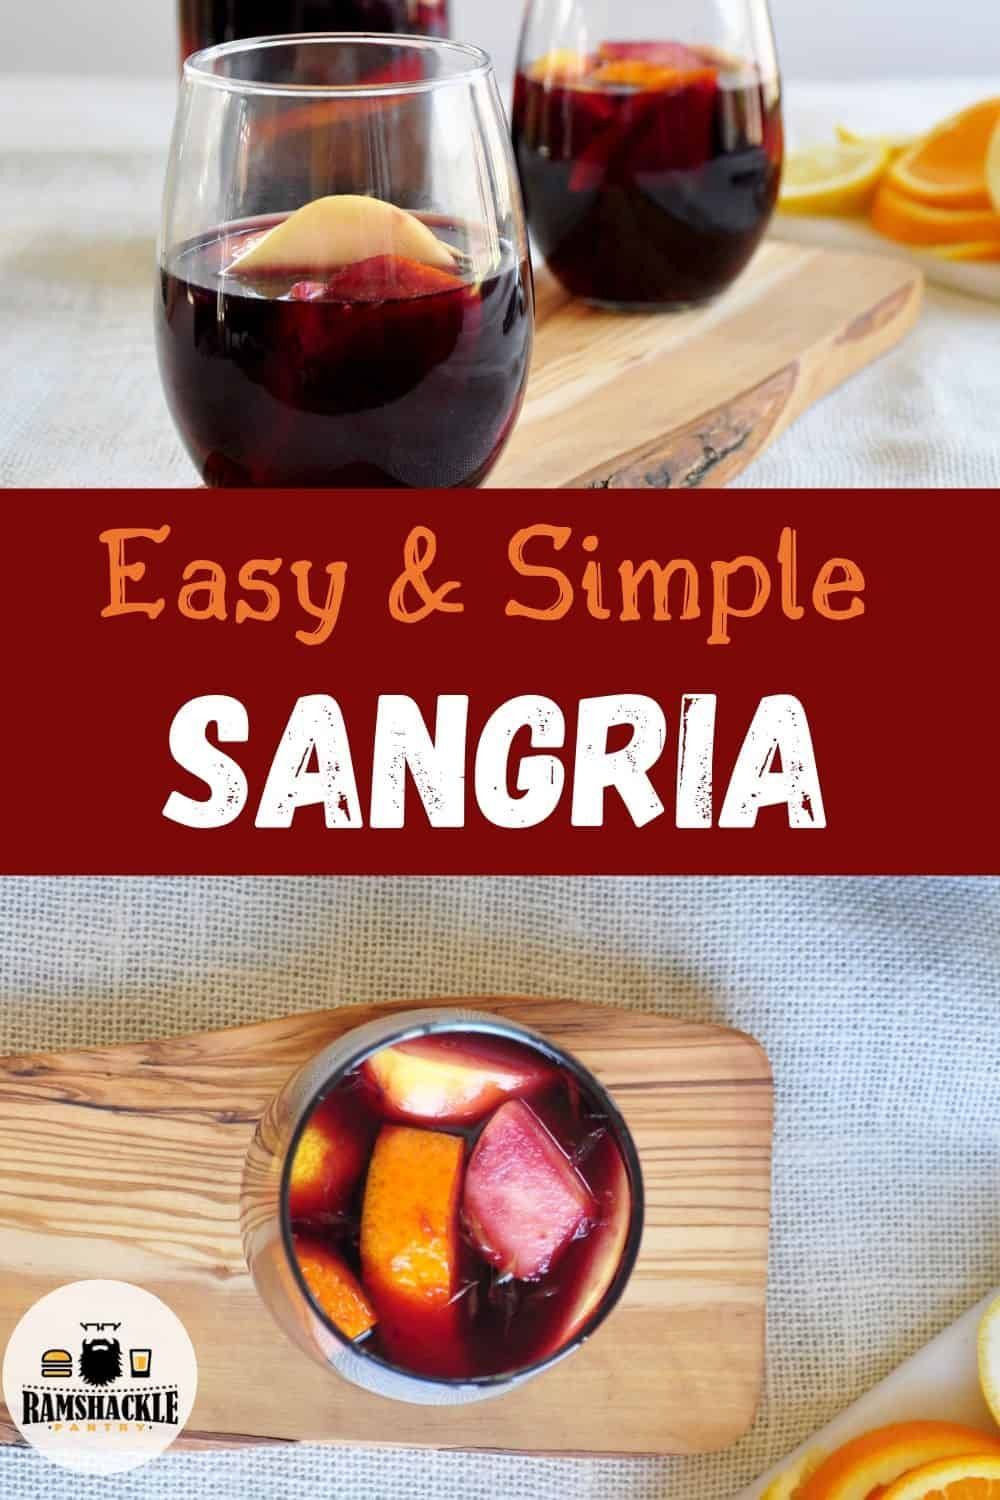 A Classic Red Sangria Recipe And It Will Be The Only One You Will Ever Need This Is Tasty Easy And Sangria Recipes Easy Sangria Recipes Red Sangria Recipes